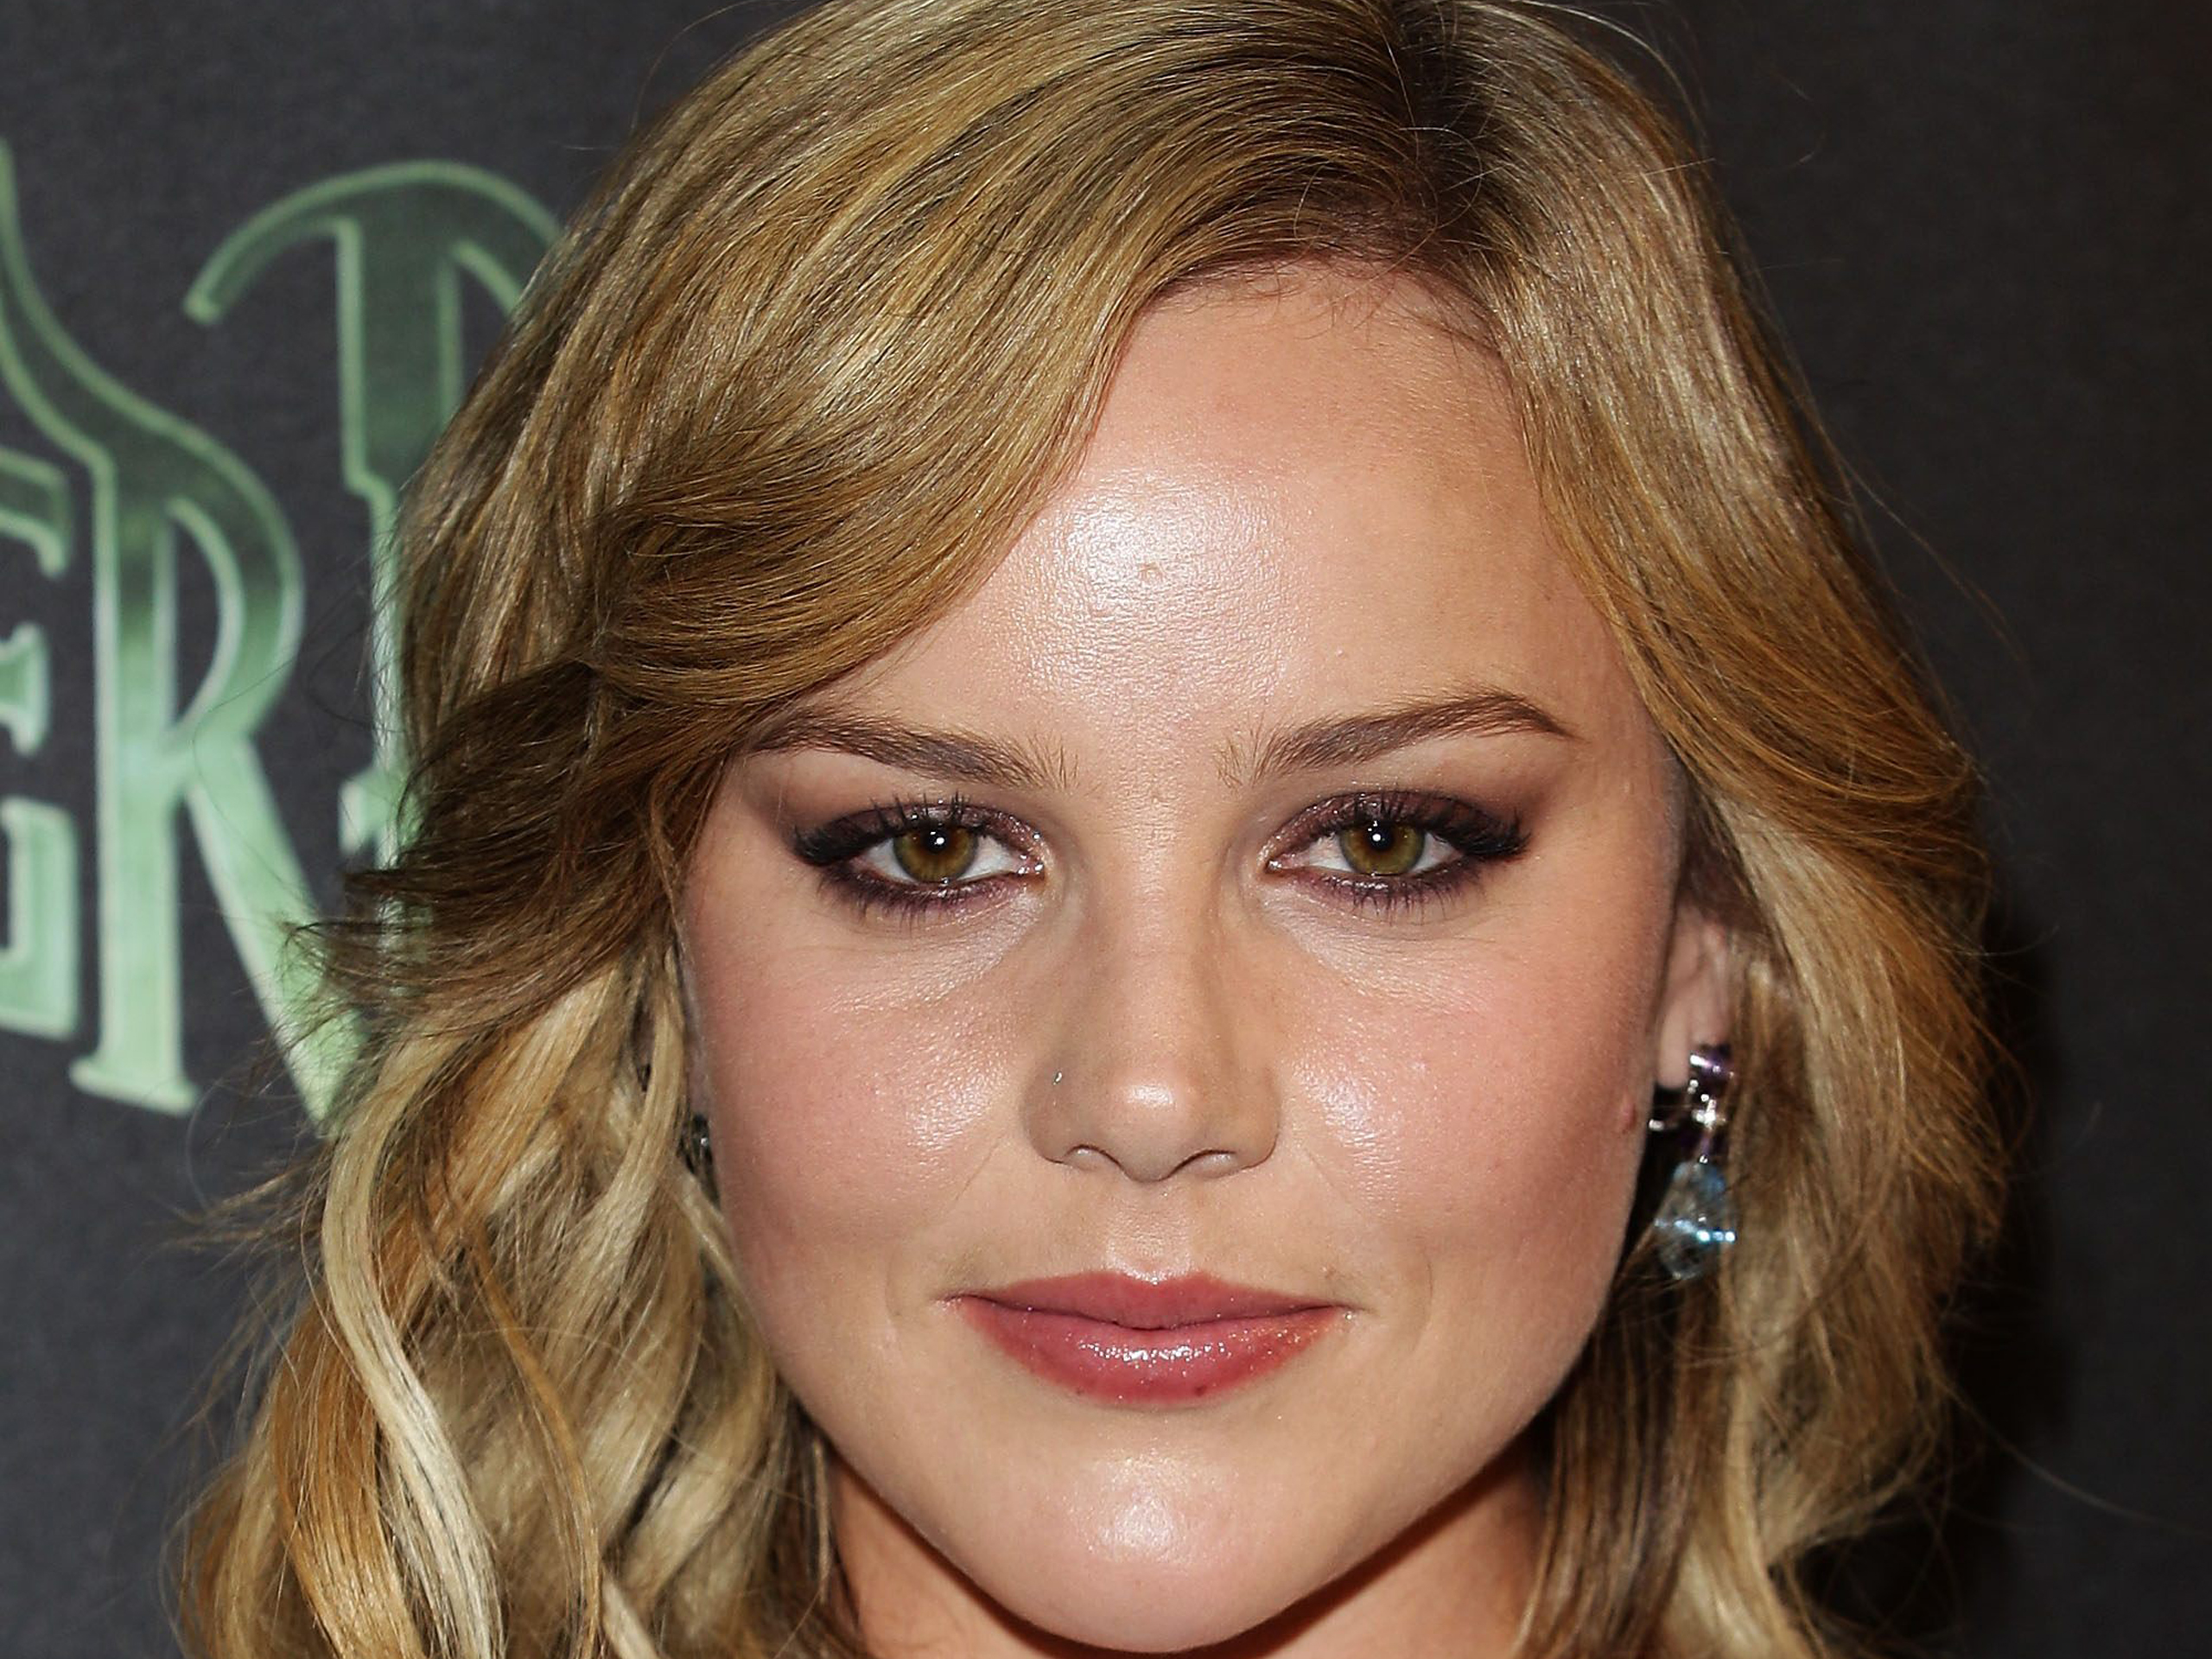 abbie cornish face wallpaper 56054